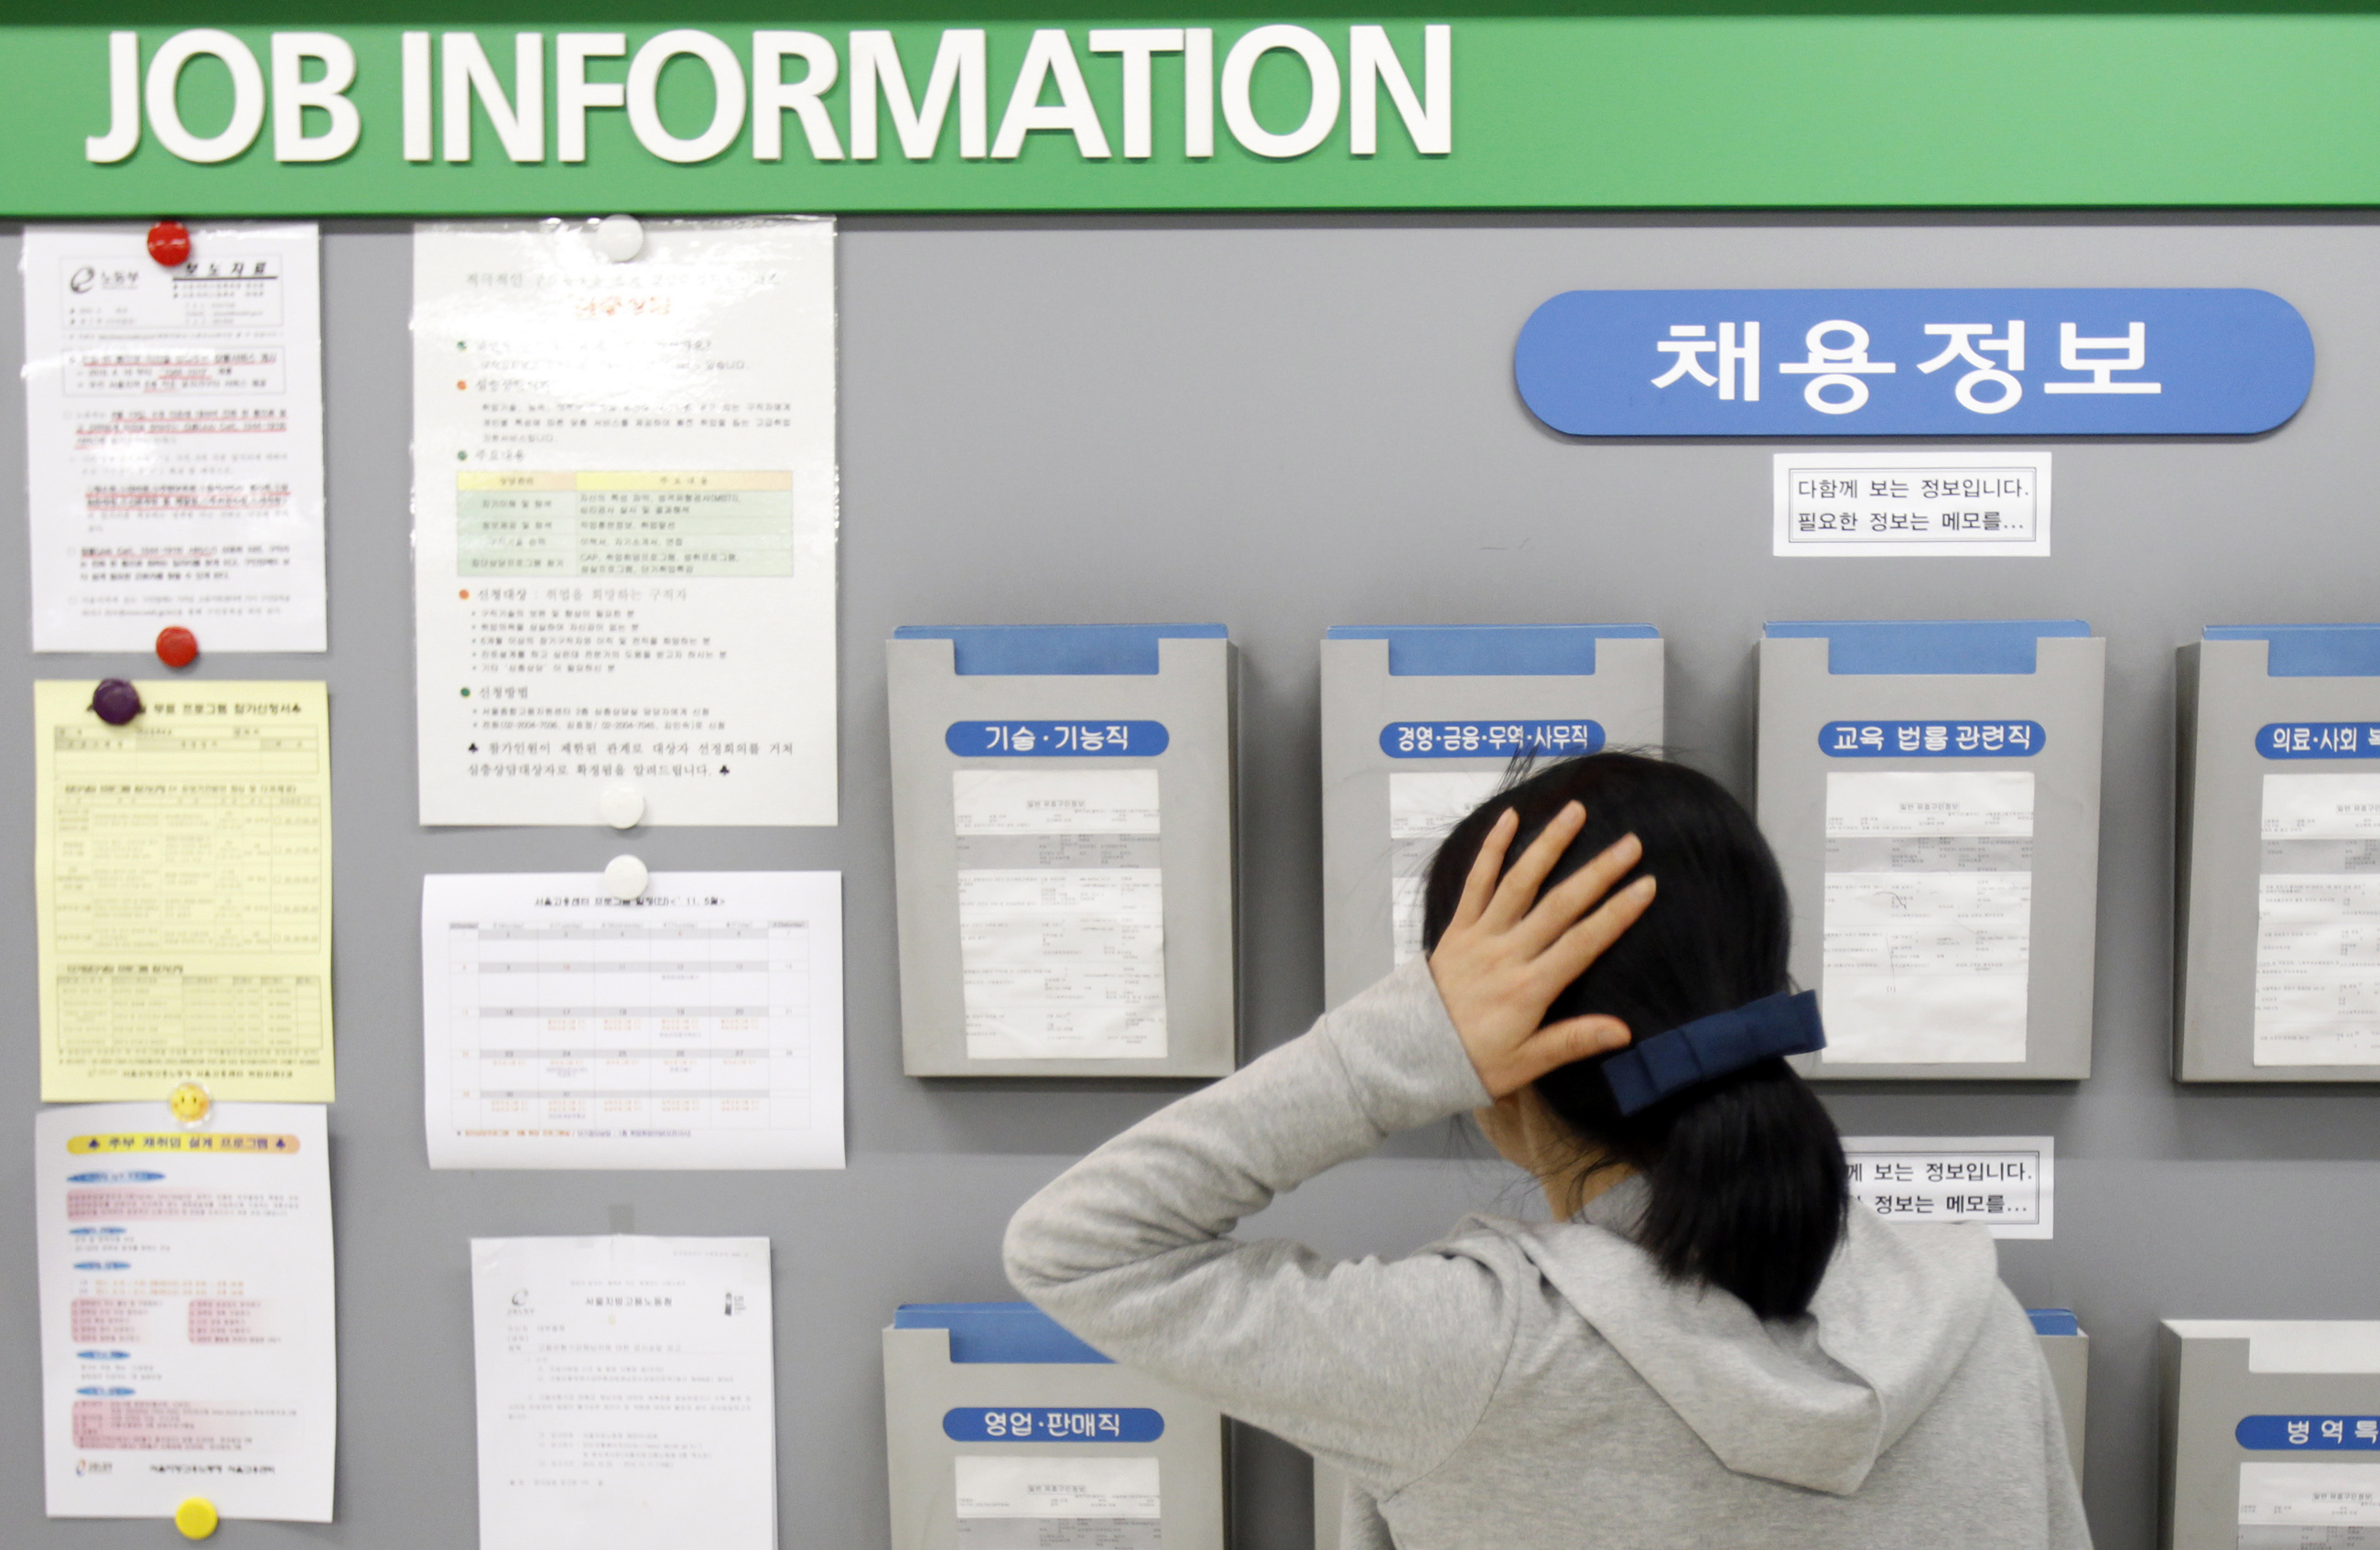 A job seeker looks at a board showing job information at an office of the Employment Information Service in Seoul on May 11, 2011